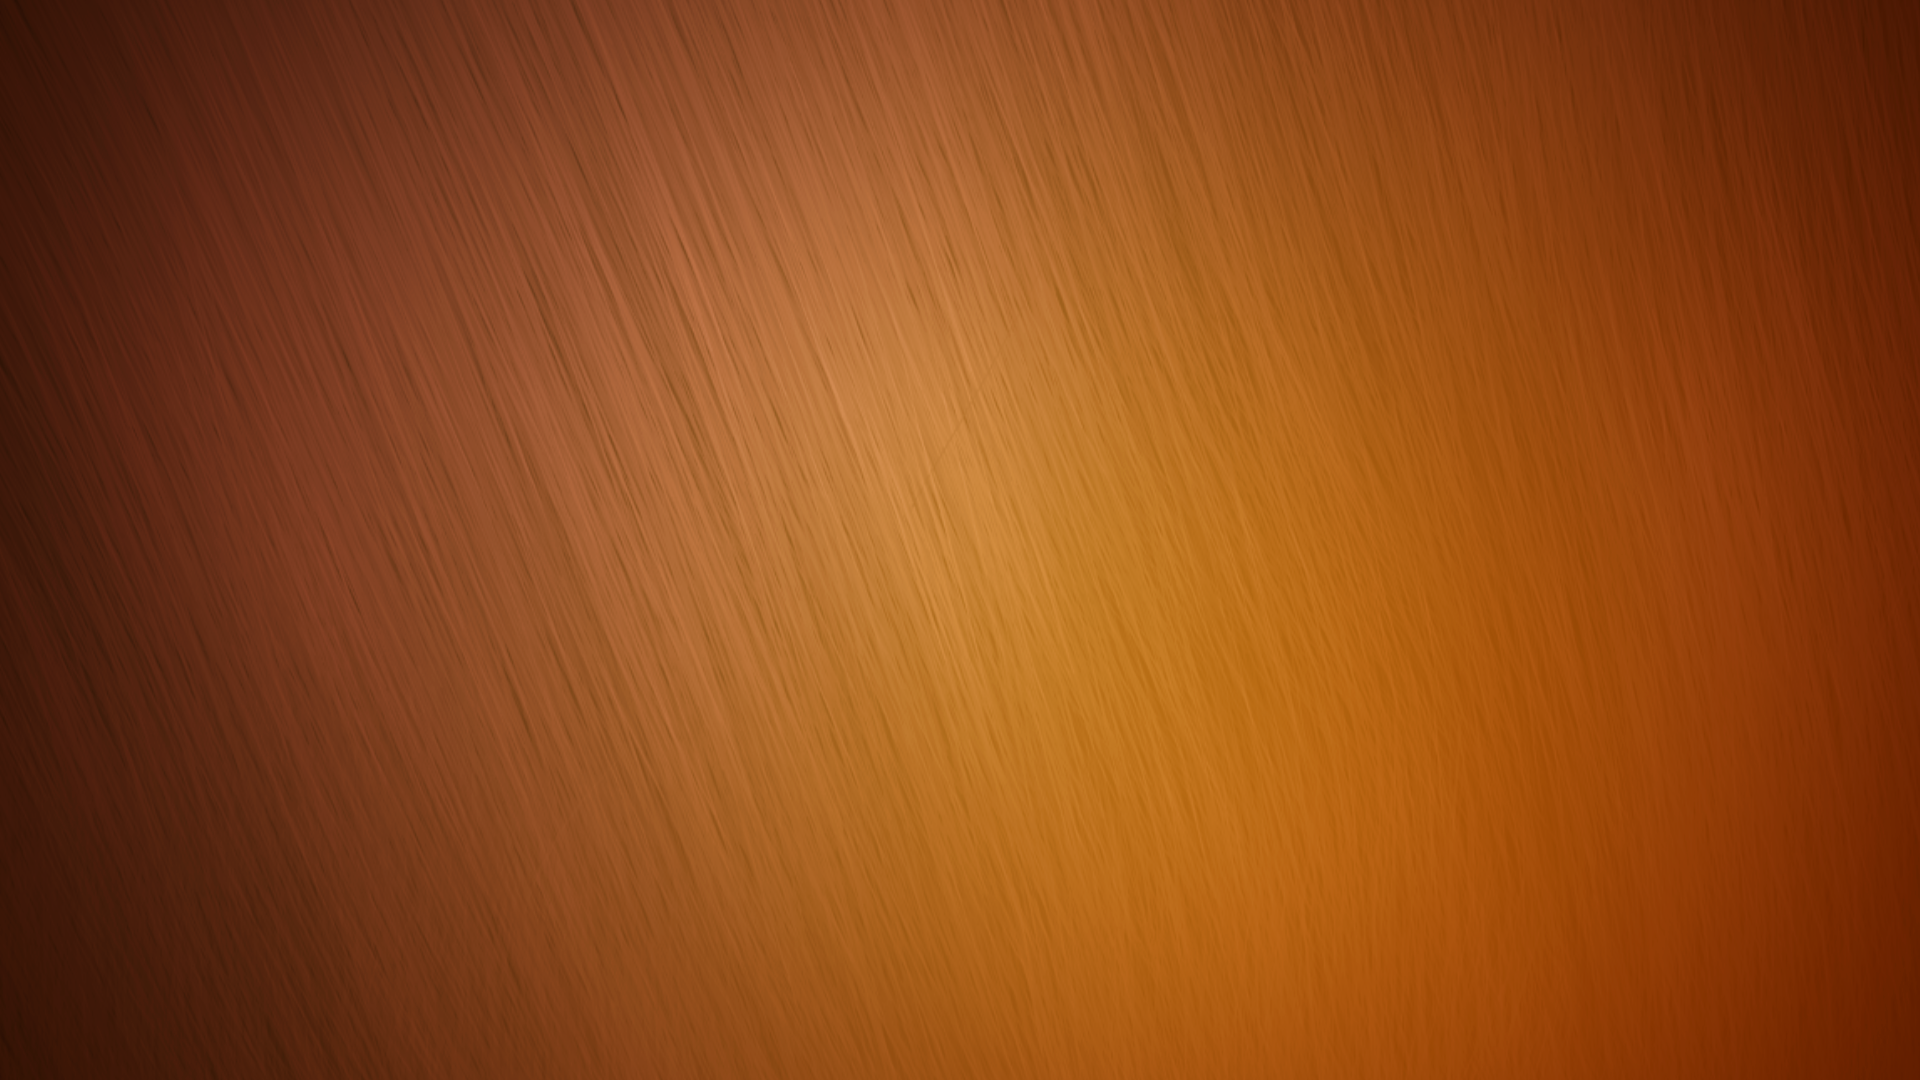 Peach Colored Wallpaper Wallpapersafari